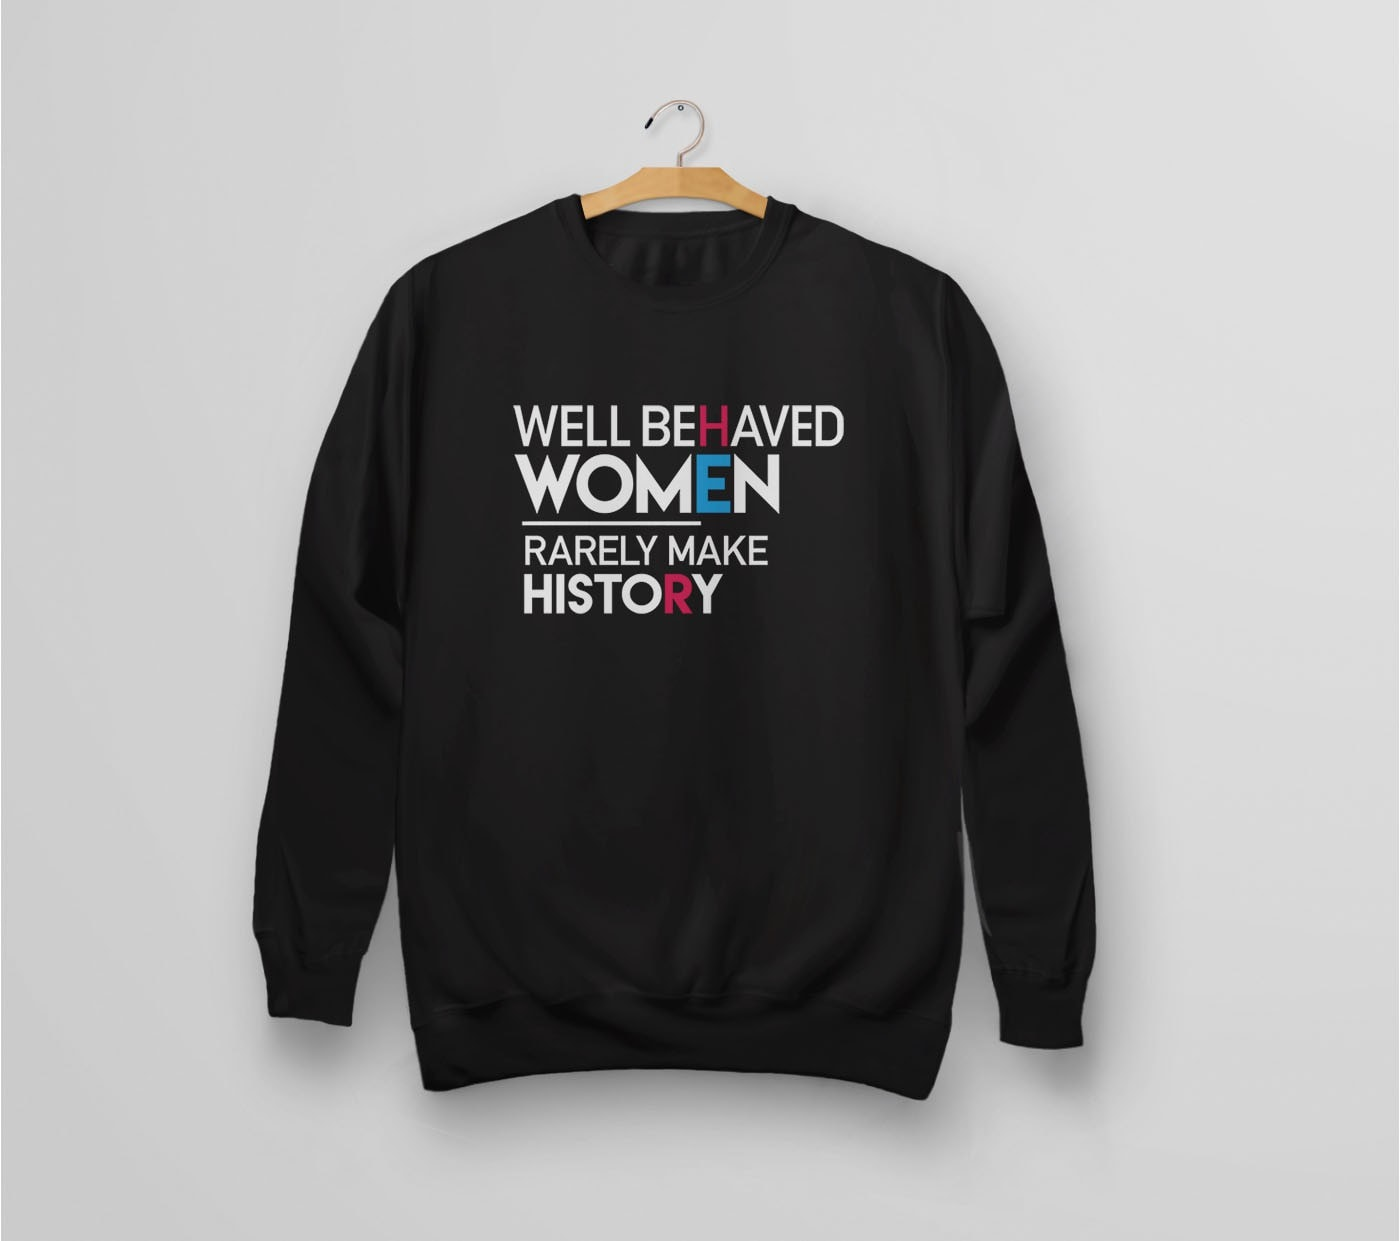 Well Behaved Women Rarely Make History | feminist quote sweatshirt for nasty women